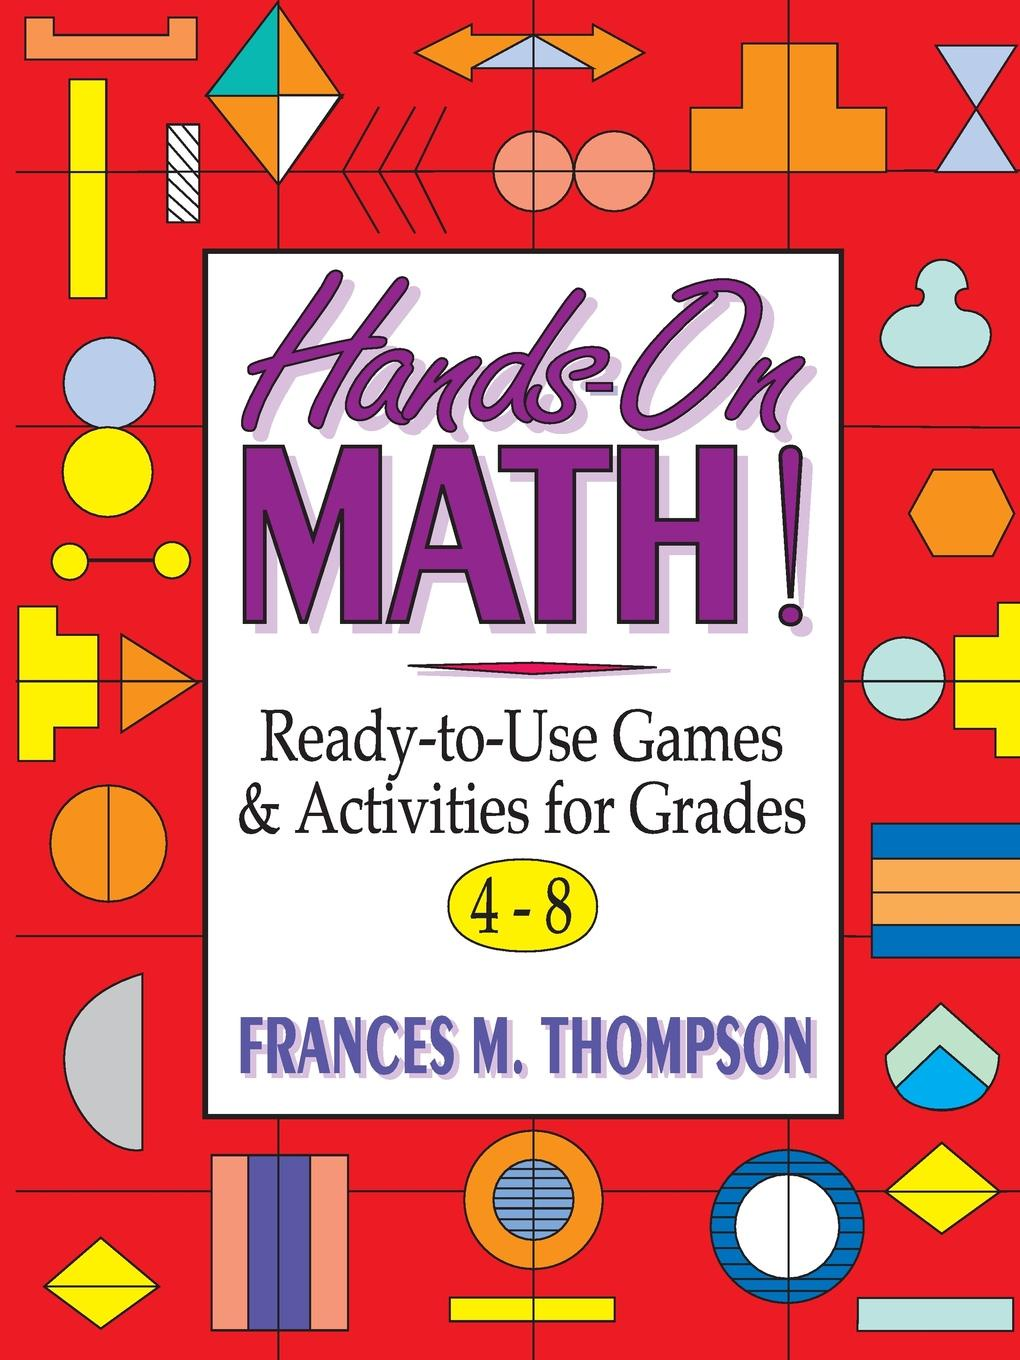 Frances McBroom Thompson Hands-On Math!. Ready-To-Use Games & Activities for Grades 4-8 erin muschla teaching the common core math standards with hands on activities grades 6 8